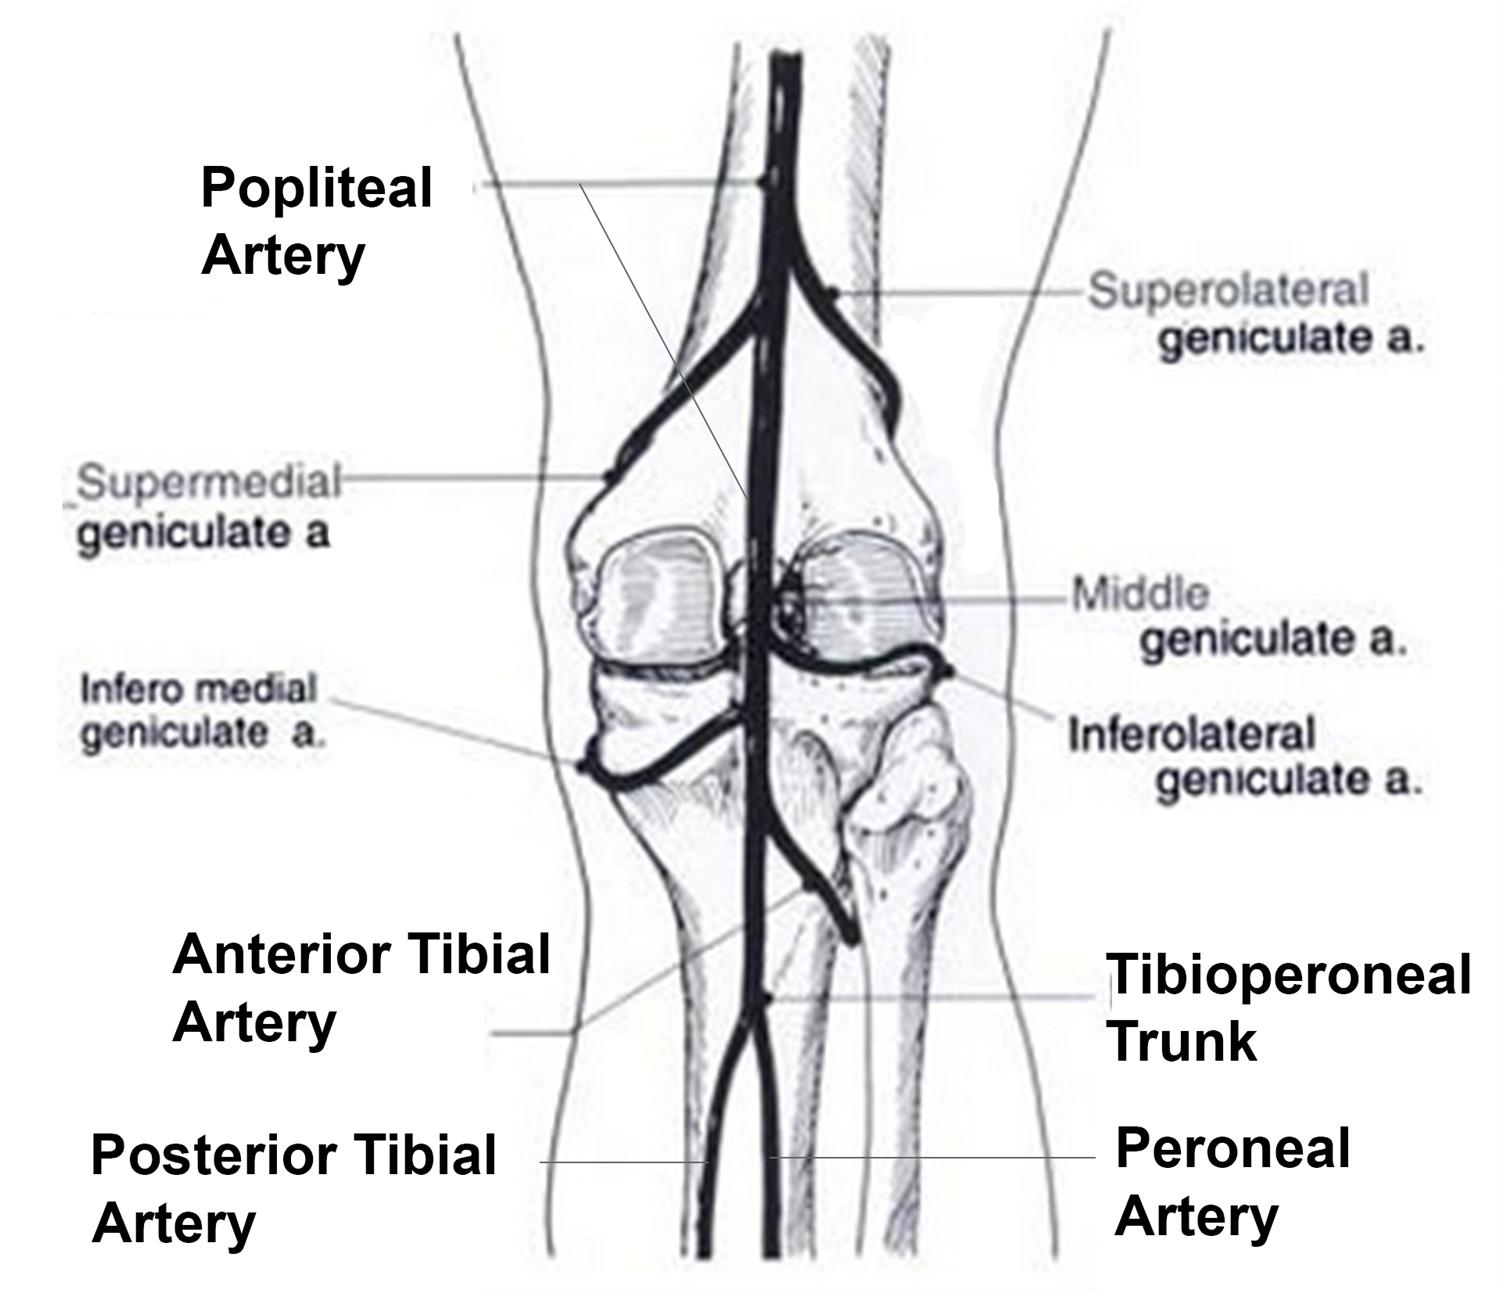 Posterior Tibial Artery Location Posterior Tibial Artery